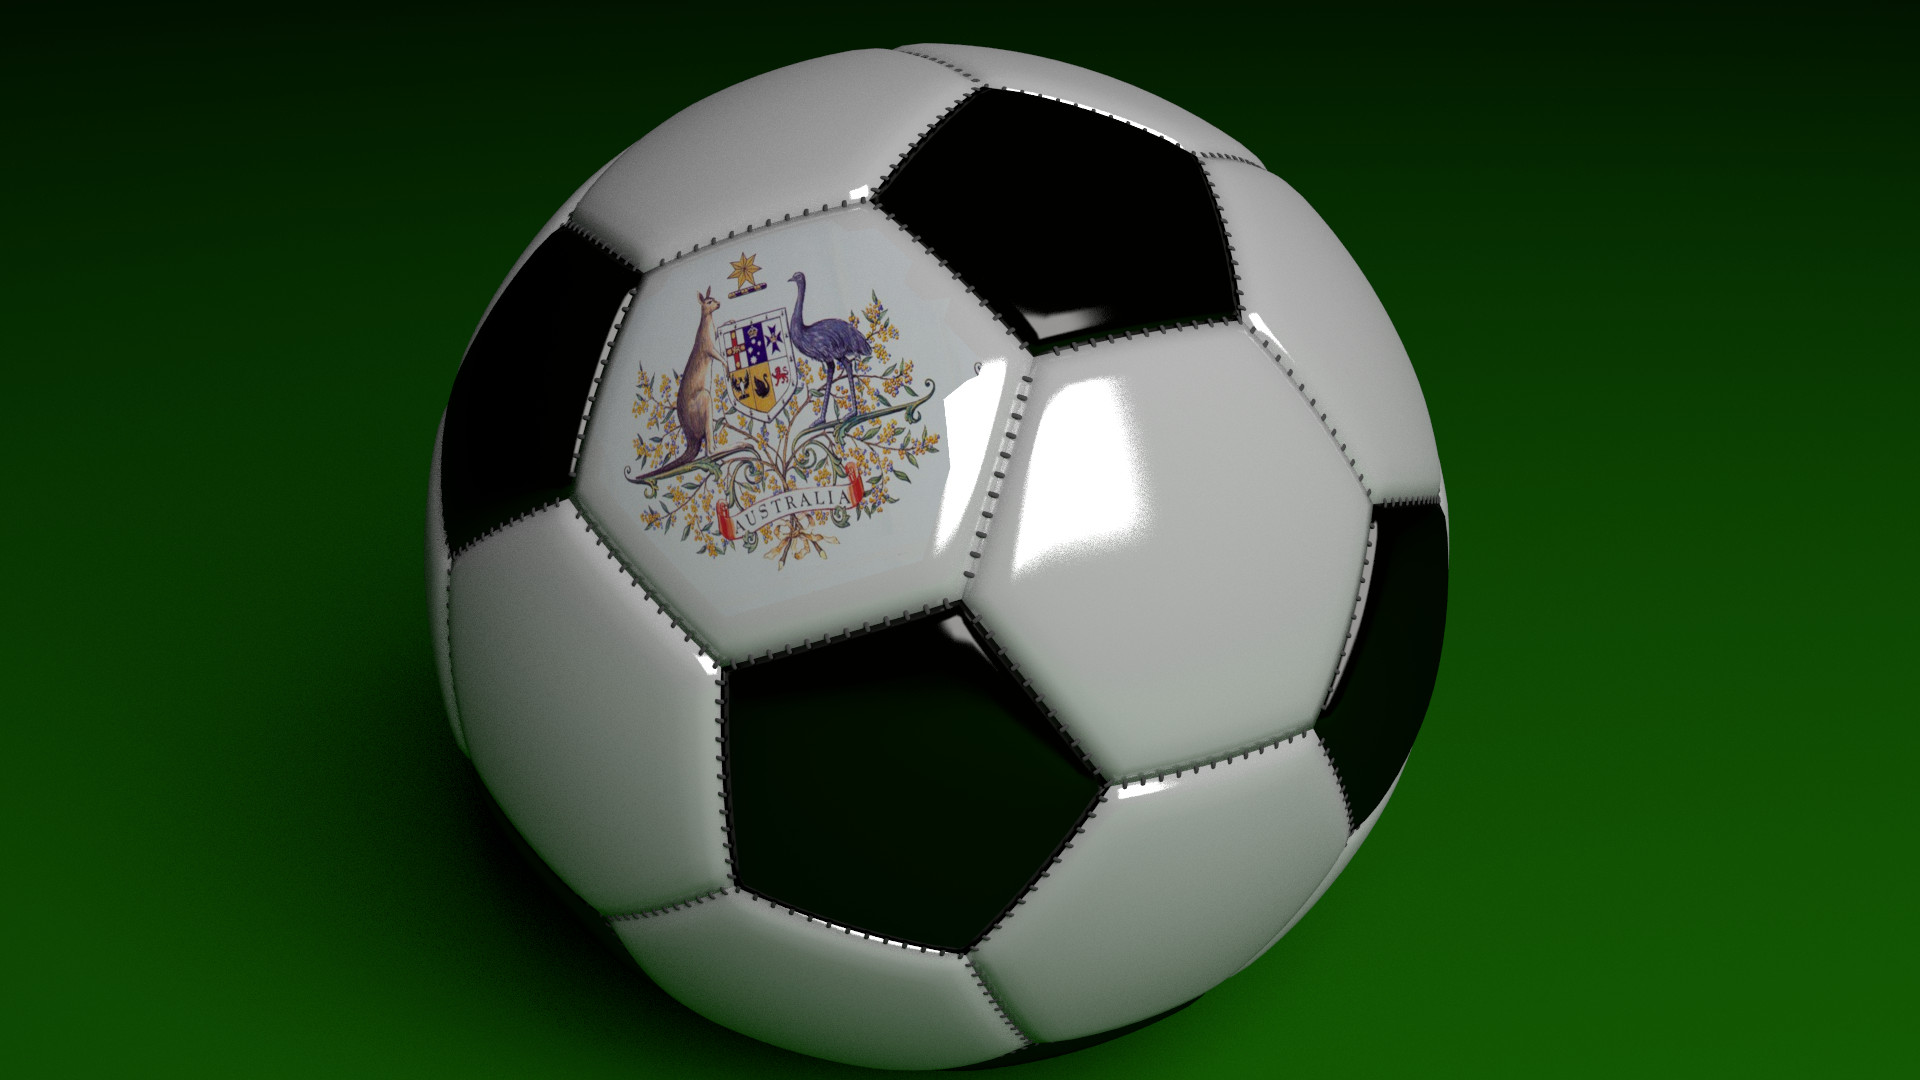 baLL with logo aust 12.png